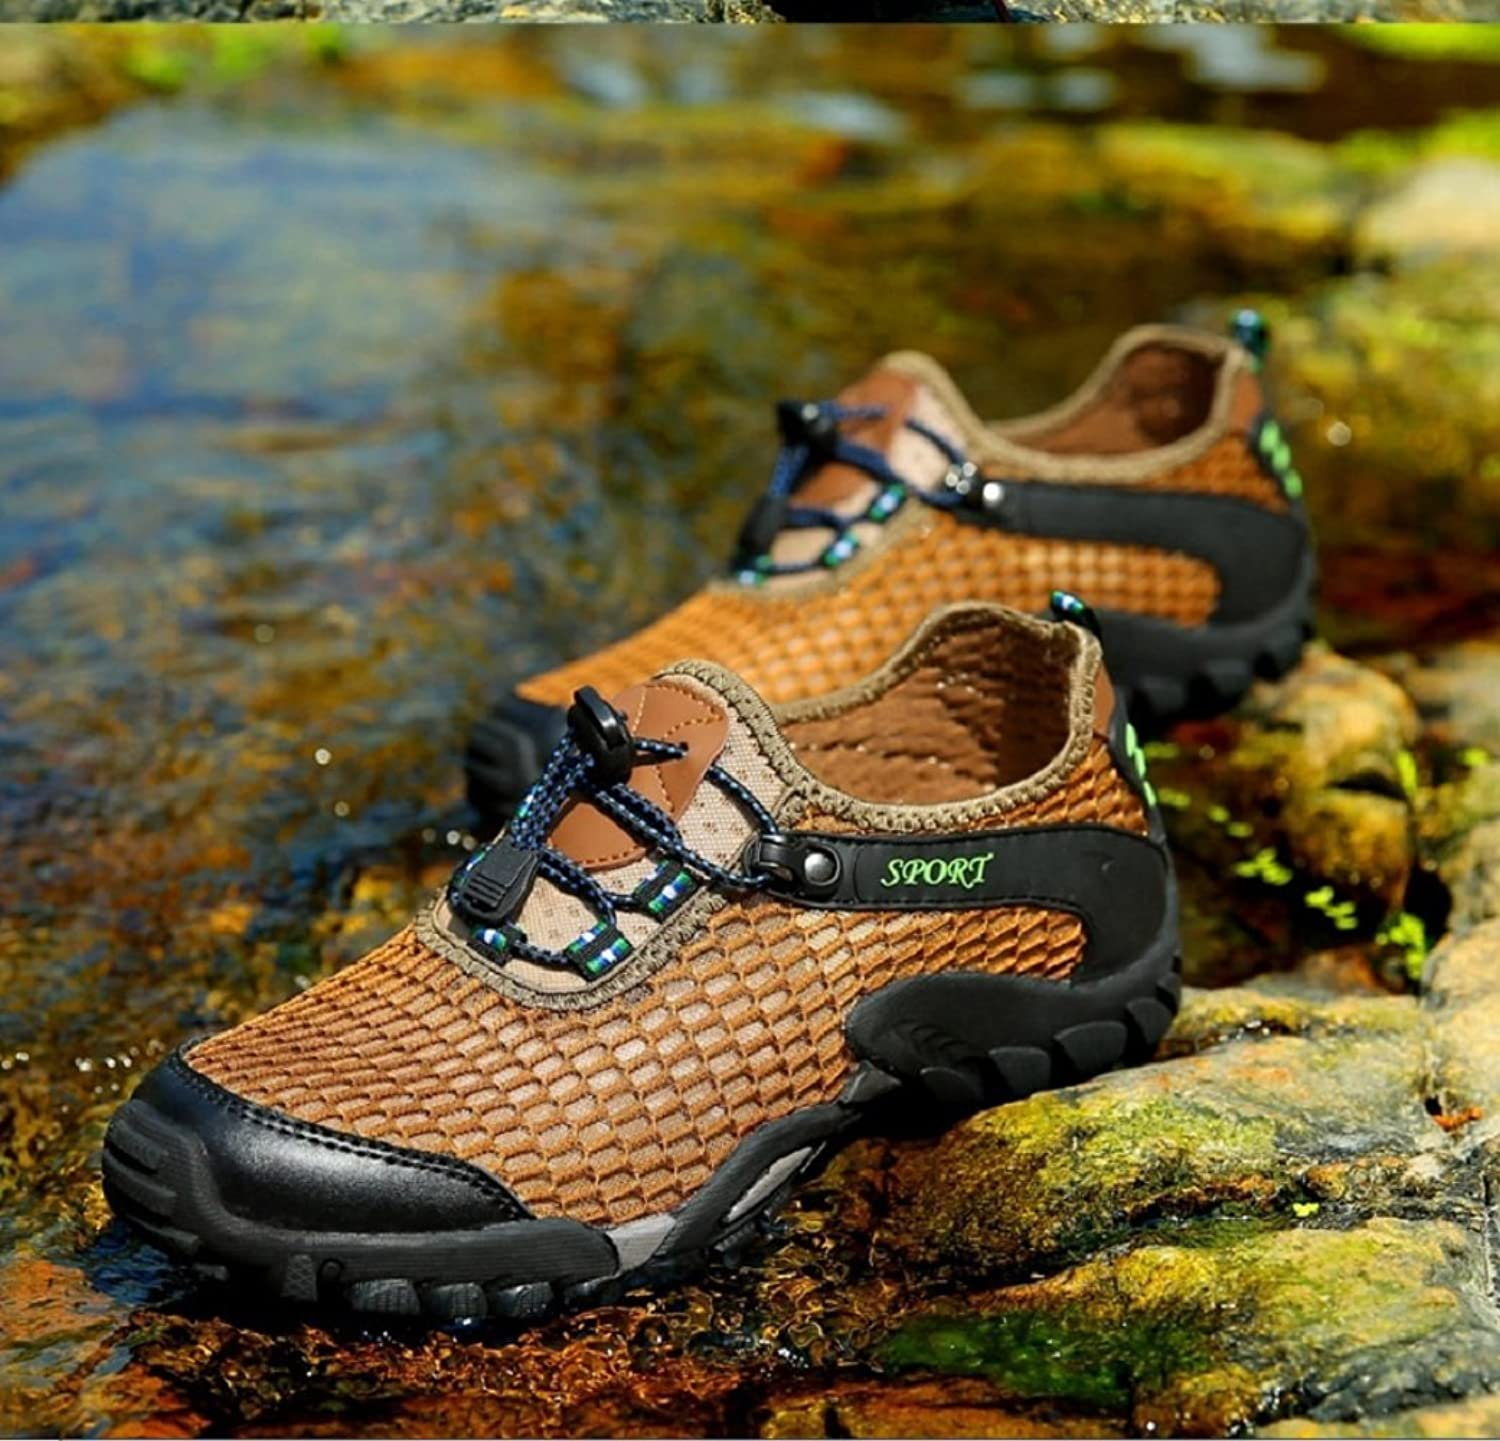 93c75d05a Mens Trainers Slip On Lightweight Running shoes Outdoor Outdoor Outdoor  Mesh Breathable Sneakers Casual Walking Sports Running shoes Fashion Summer  ...